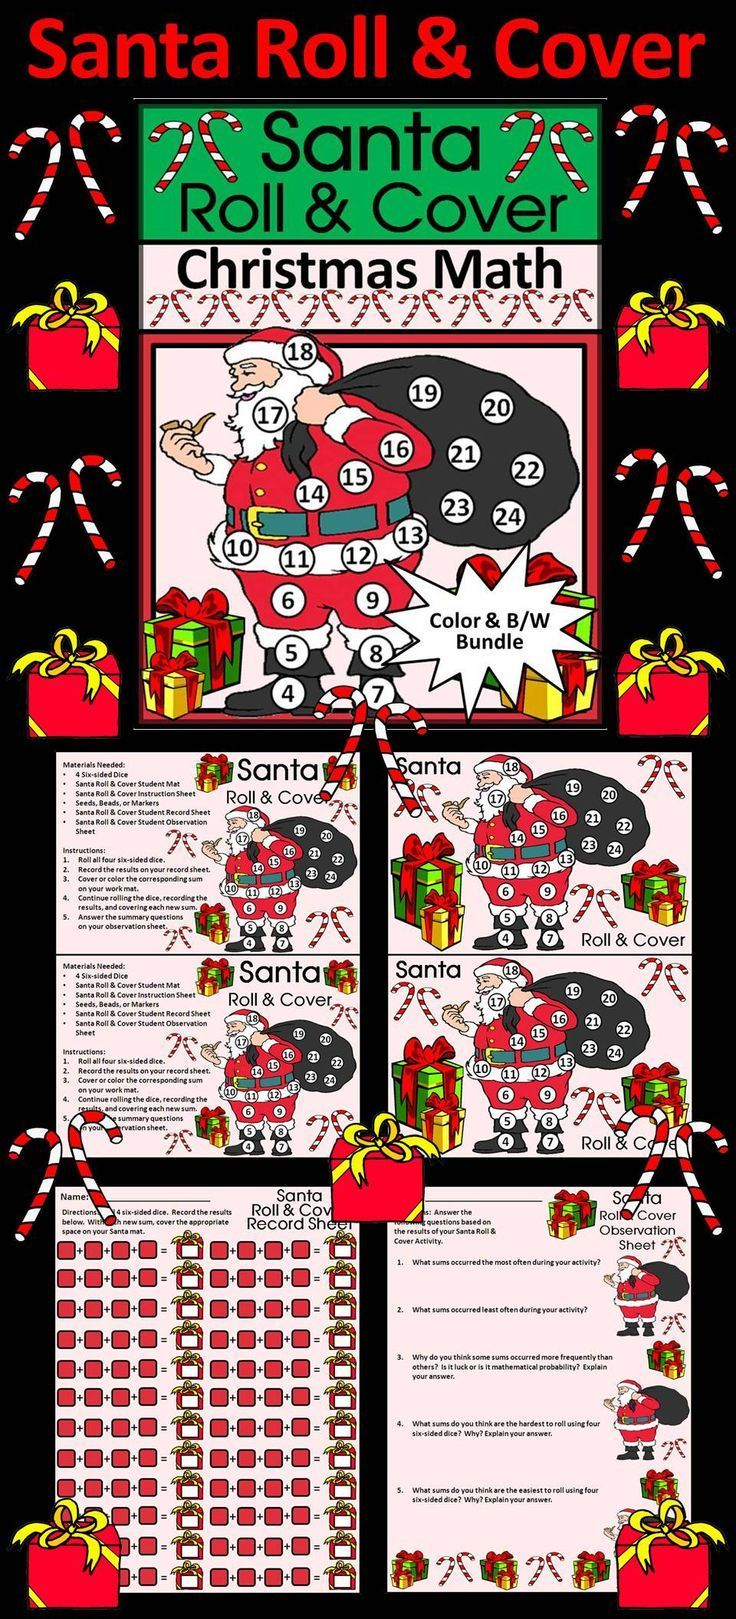 Santa Roll & Cover Christmas Math Activity Packet: Give your students a fun  and festive